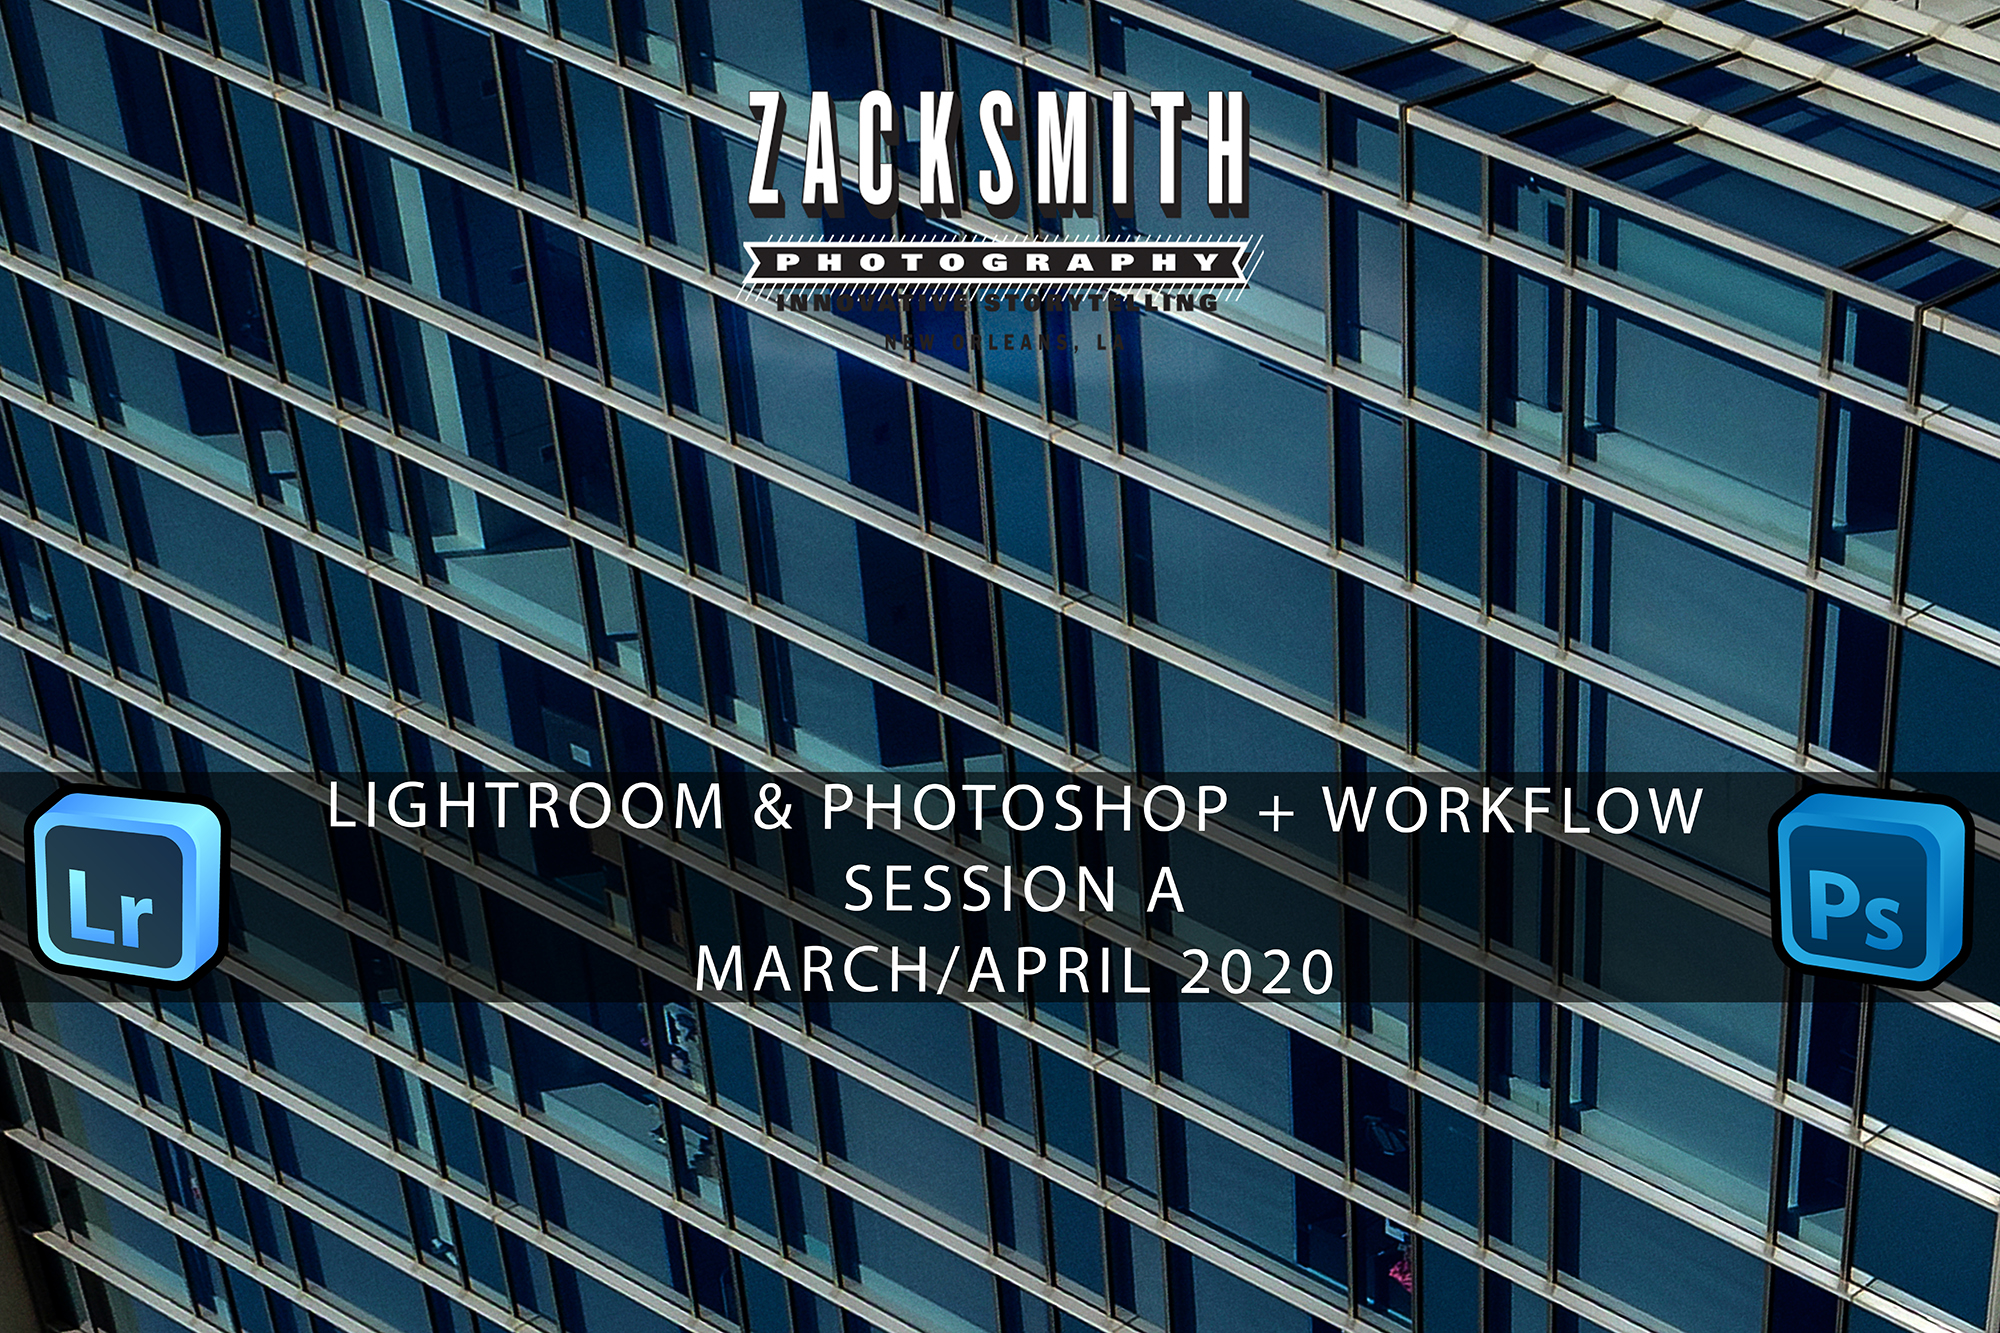 Learn Lightroom and Photoshop in New Orleans